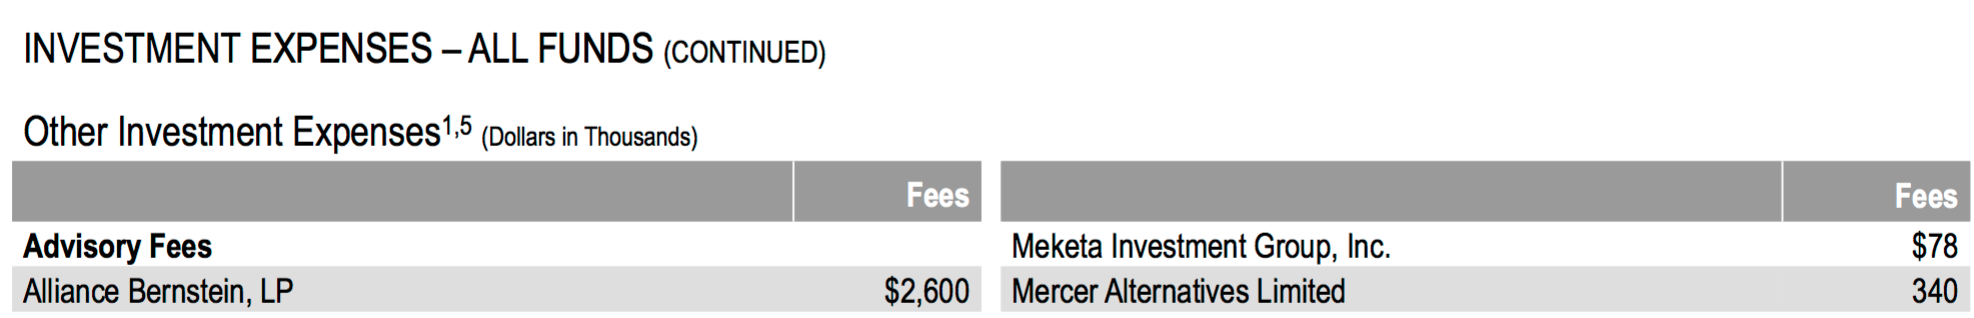 CalPERS Cooks Its Books: Grossly Understated Investment Consultant Meketa's Expenses in Annual Financials; Made a Criminal False Account by Burying the Cost 4